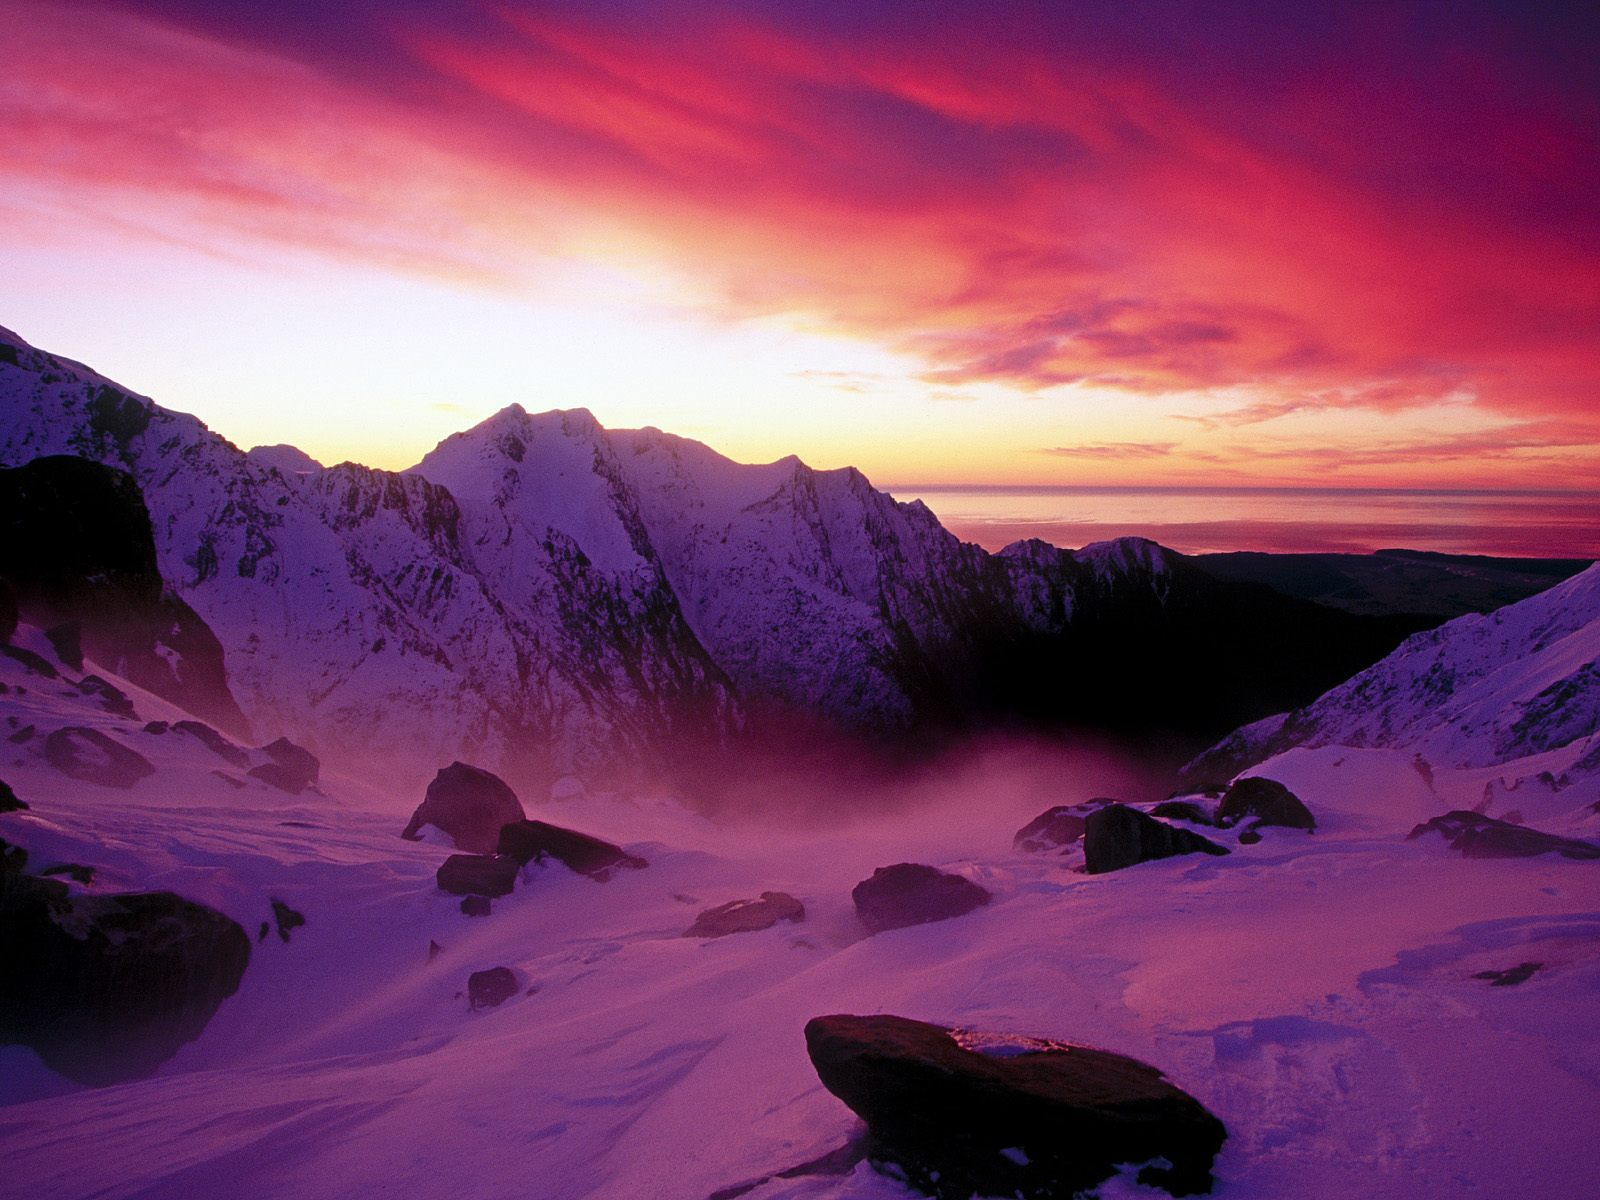 Sunset Over Franz Josef Glacier New Zealand 2697.66 Kb